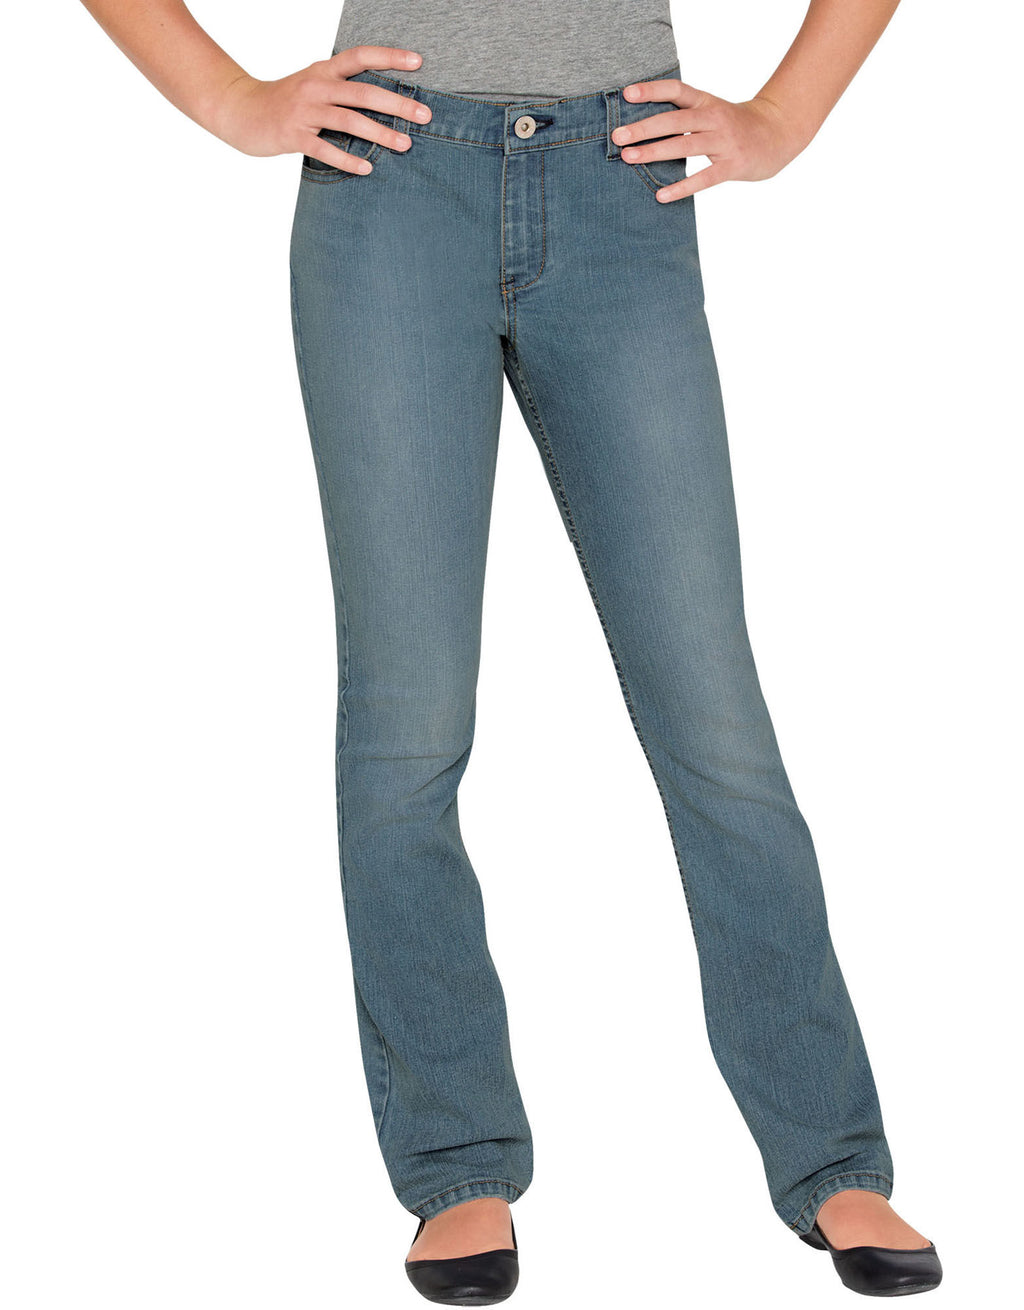 Dickies Girls Slim Fit Bootcut Denim Jeans, Sizes 7-16